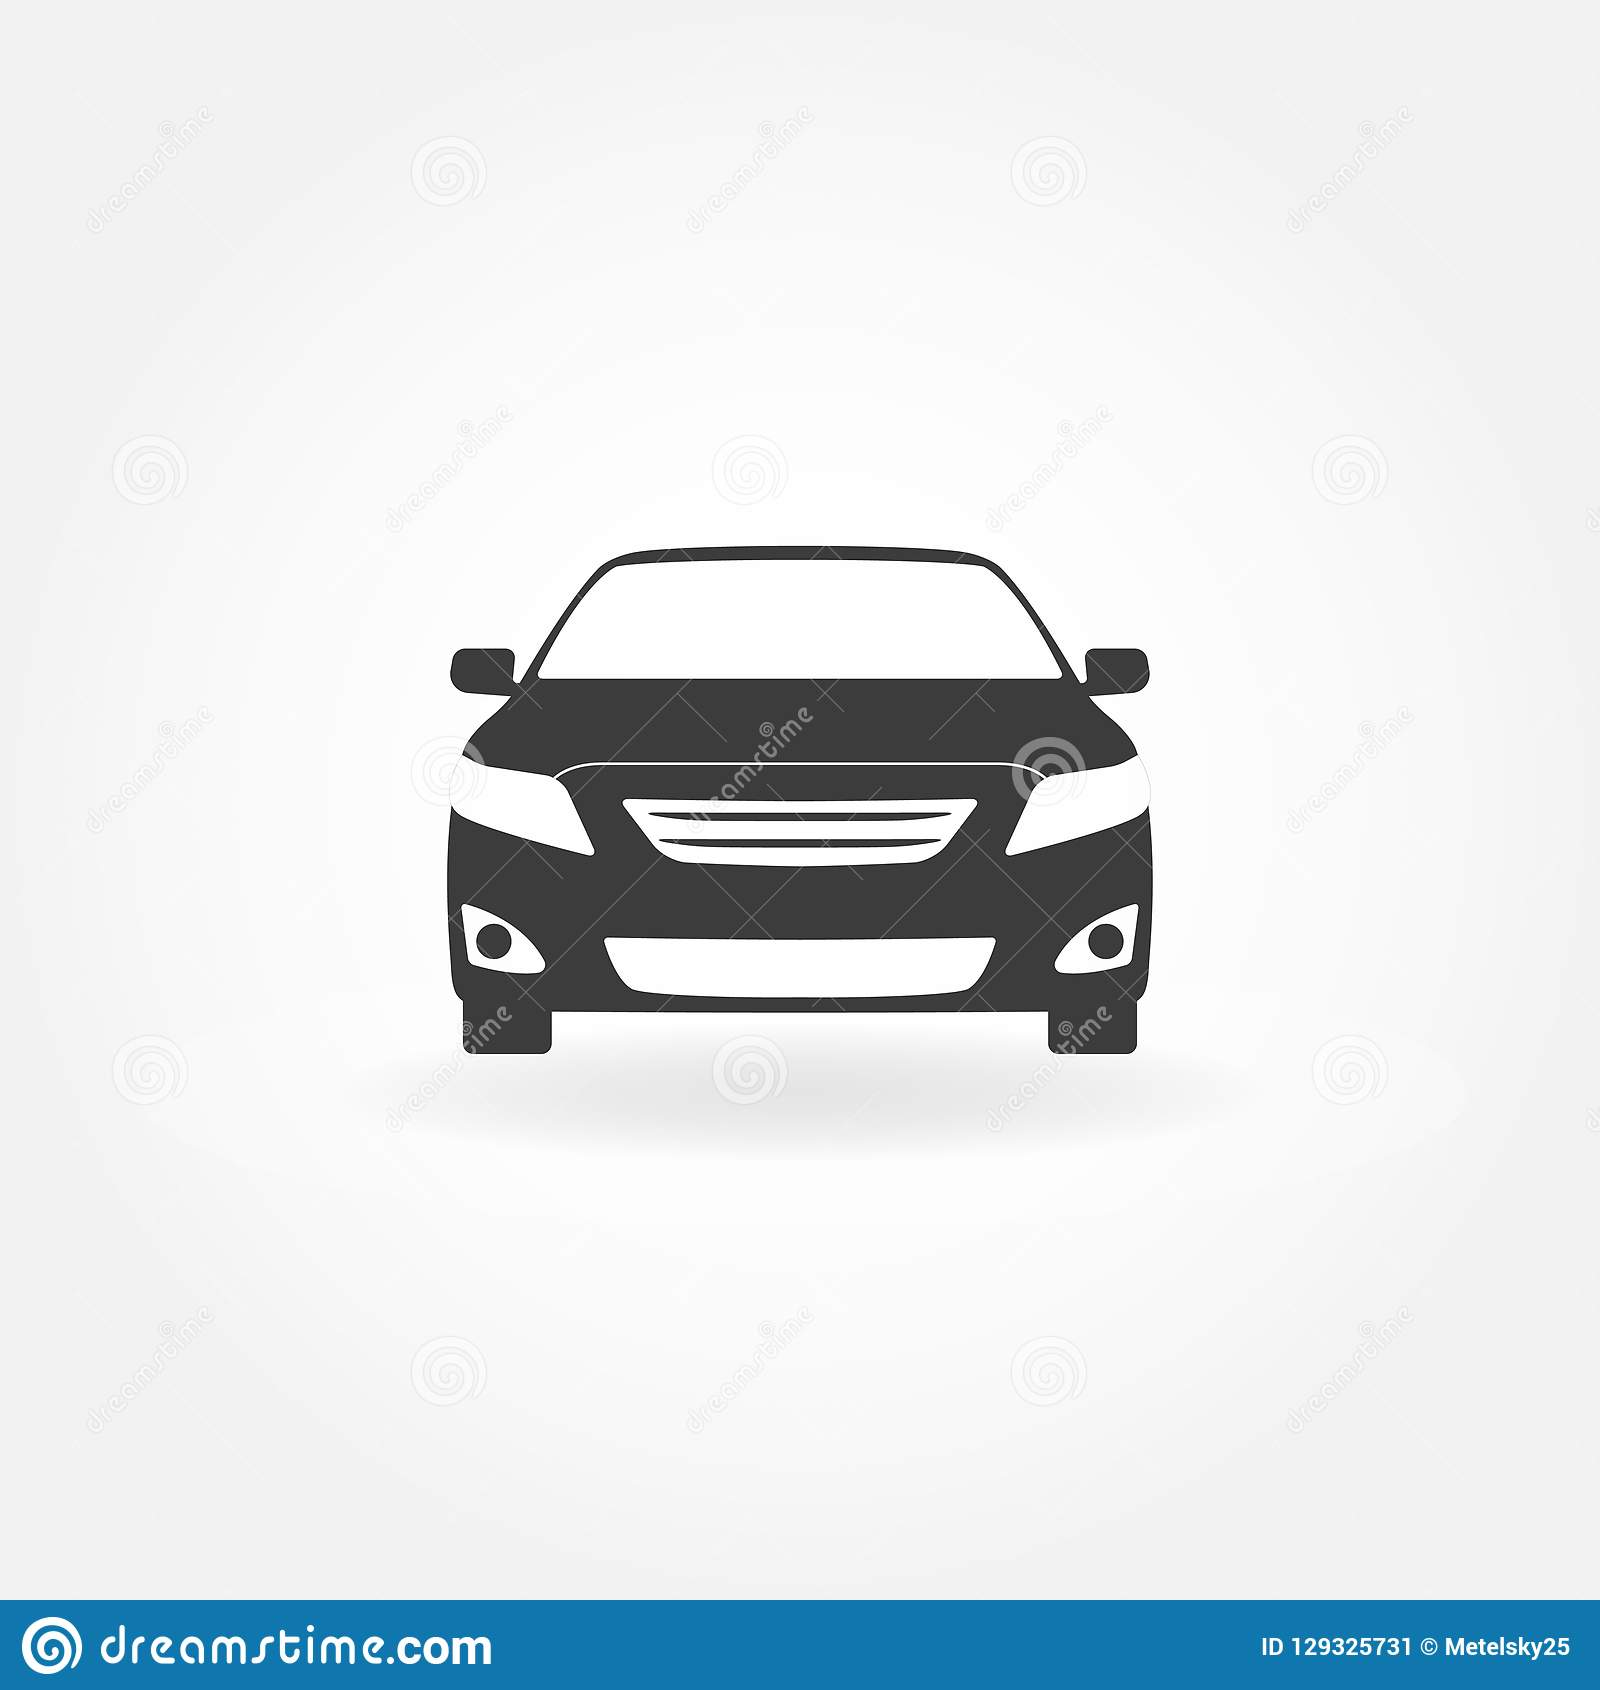 Car Icon. Car Front View Icon. Vector Illustration Of